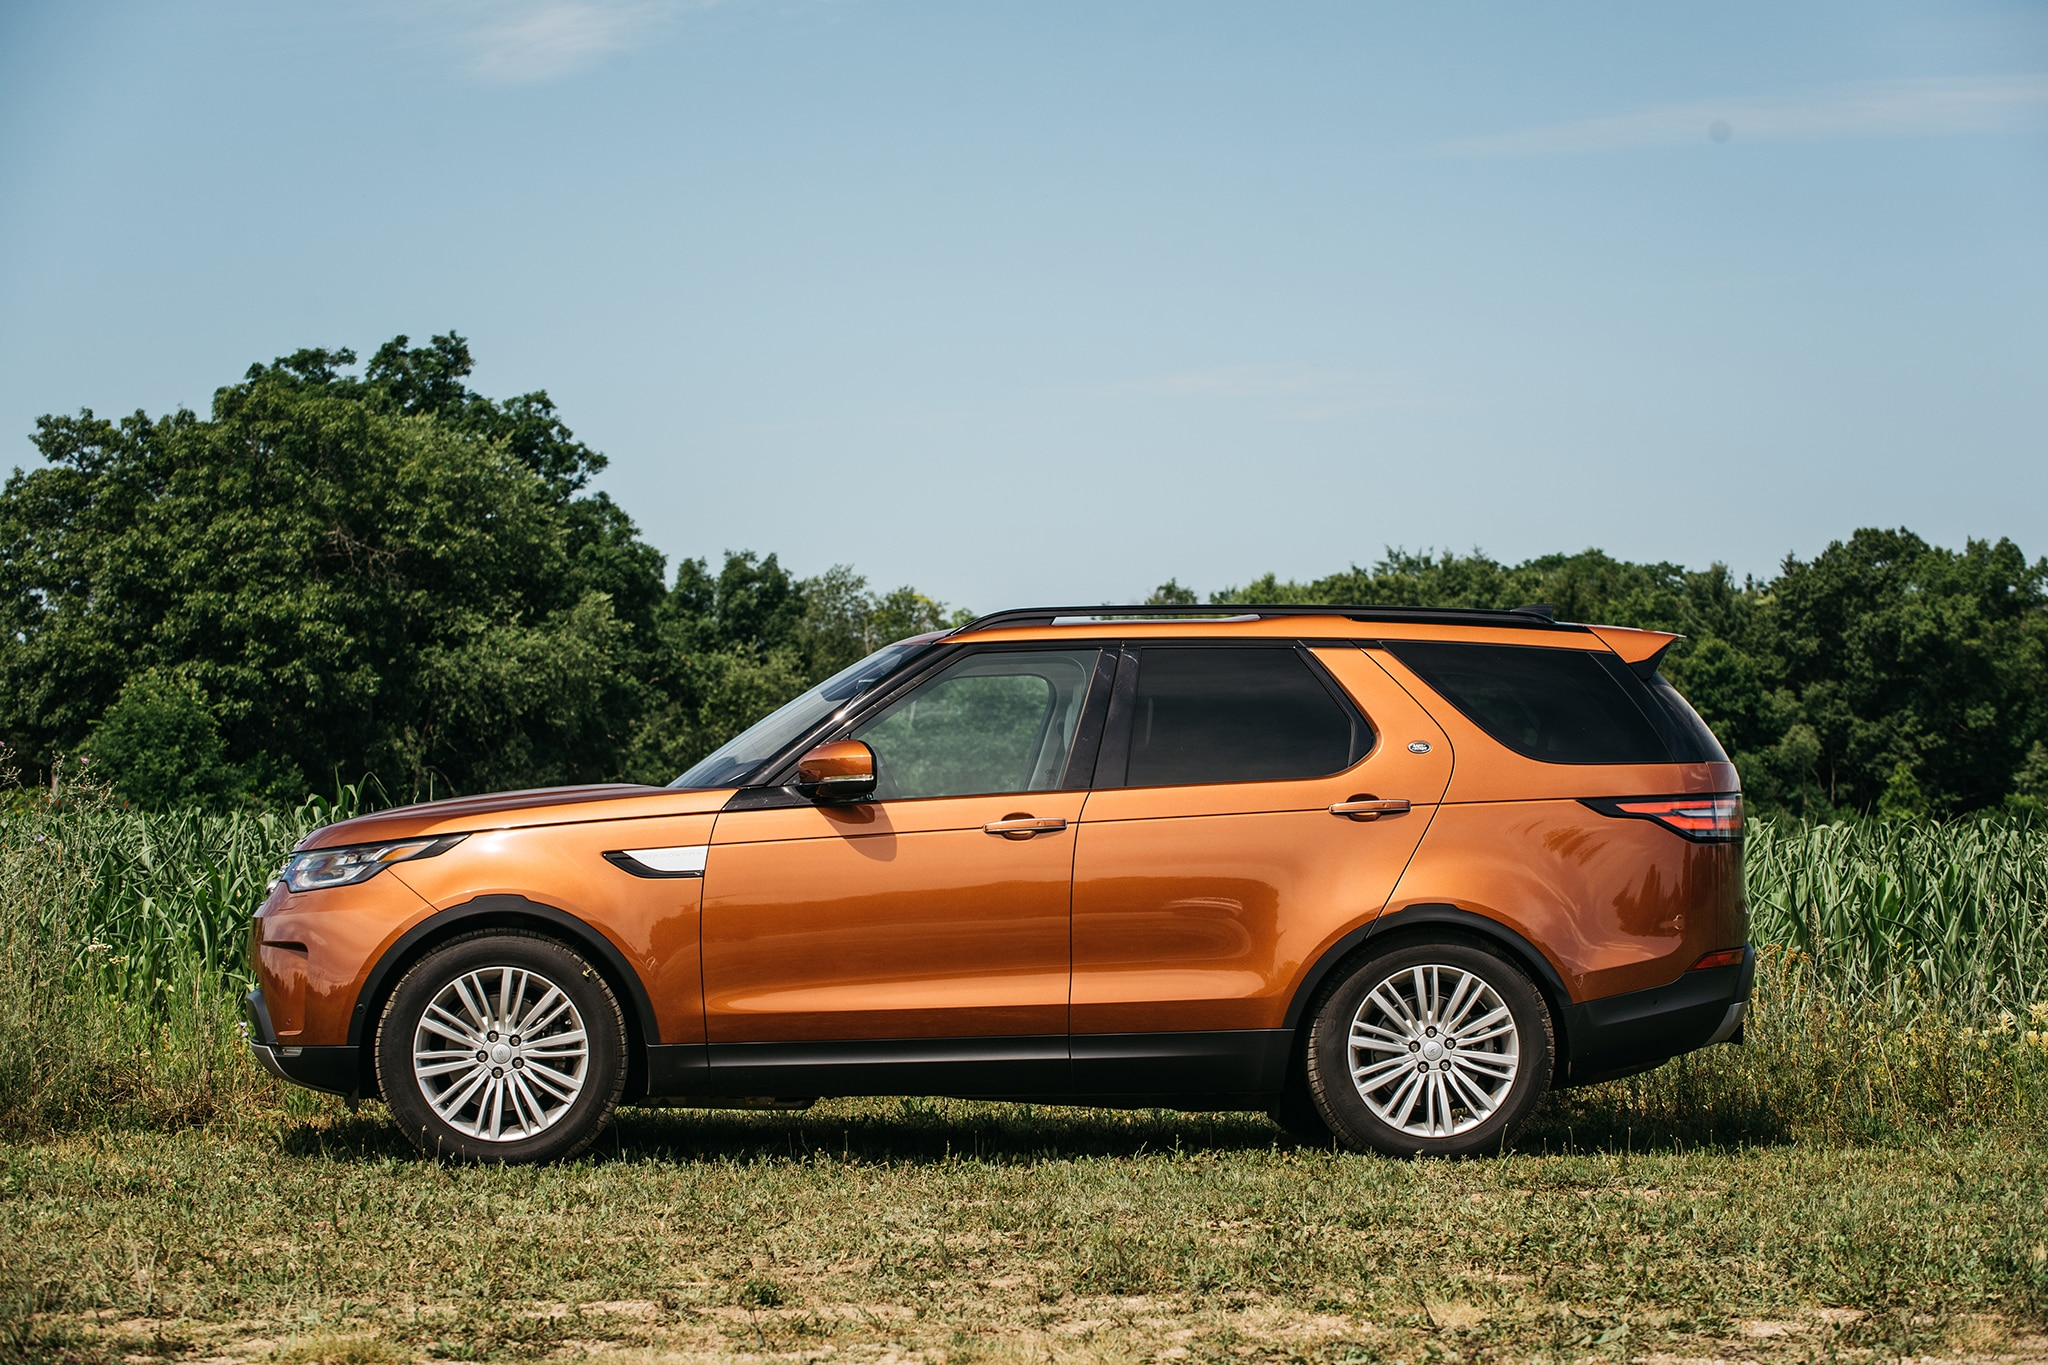 2017 Land Rover Discovery Td6 HSE Side Profile 02